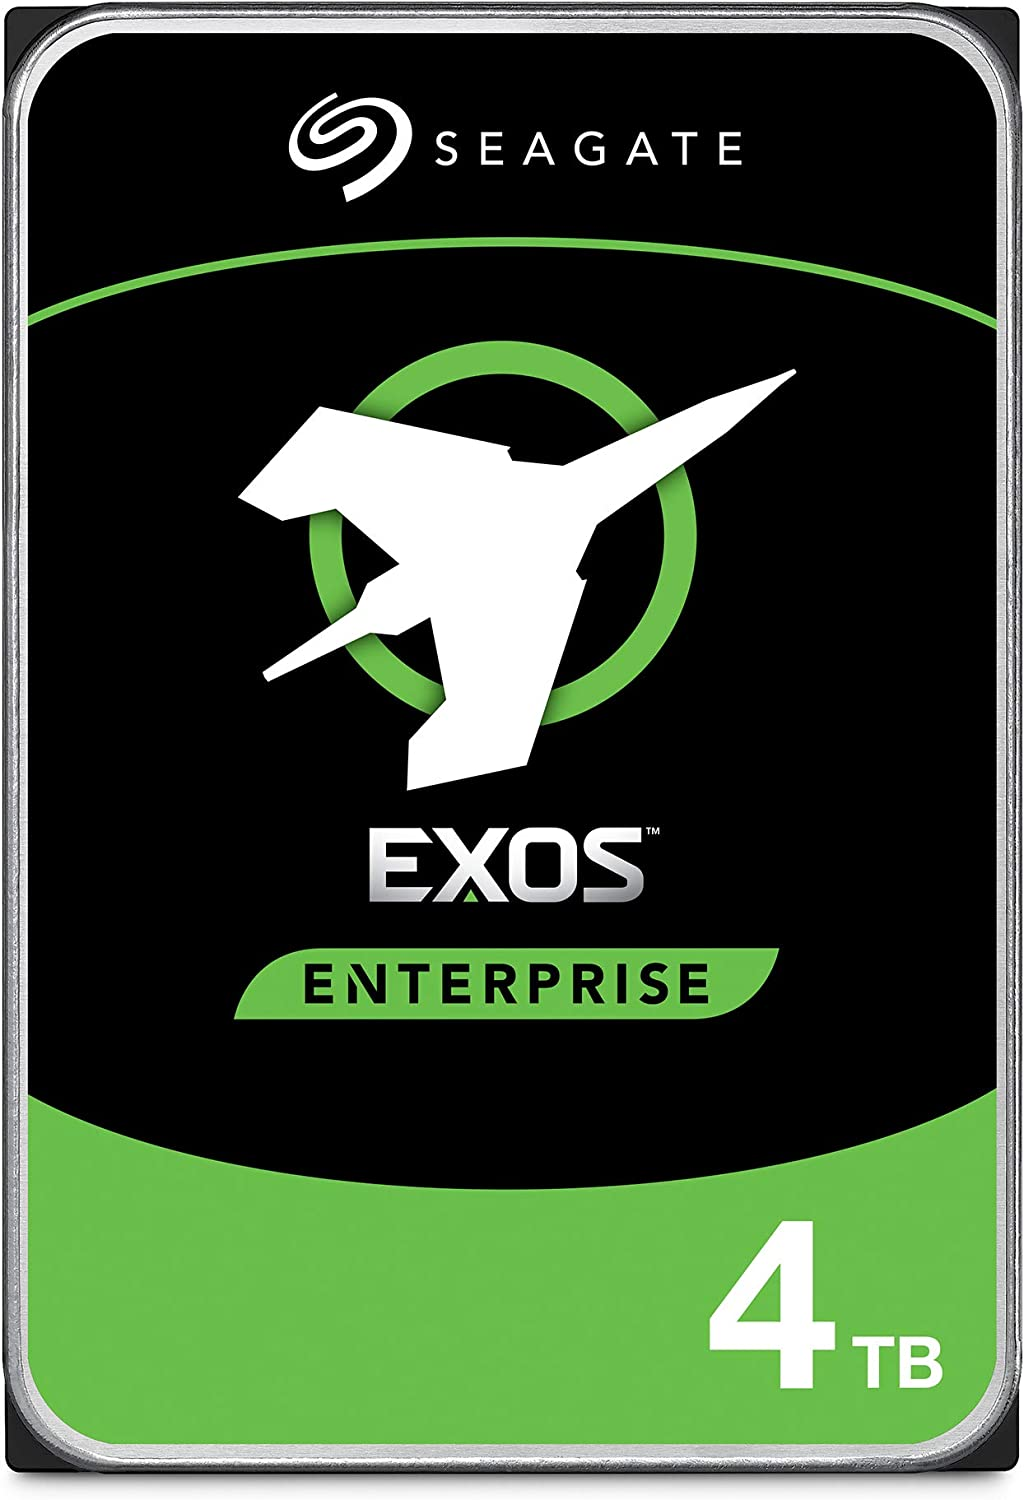 Seagate Exos 4TB Internal Hard Drive Enterprise HDD – 3.5 Inch 6Gb/s 7200 RPM 128MB Cache for Enterprise, Data Center – Frustration Free Packaging (ST4000NM0035)